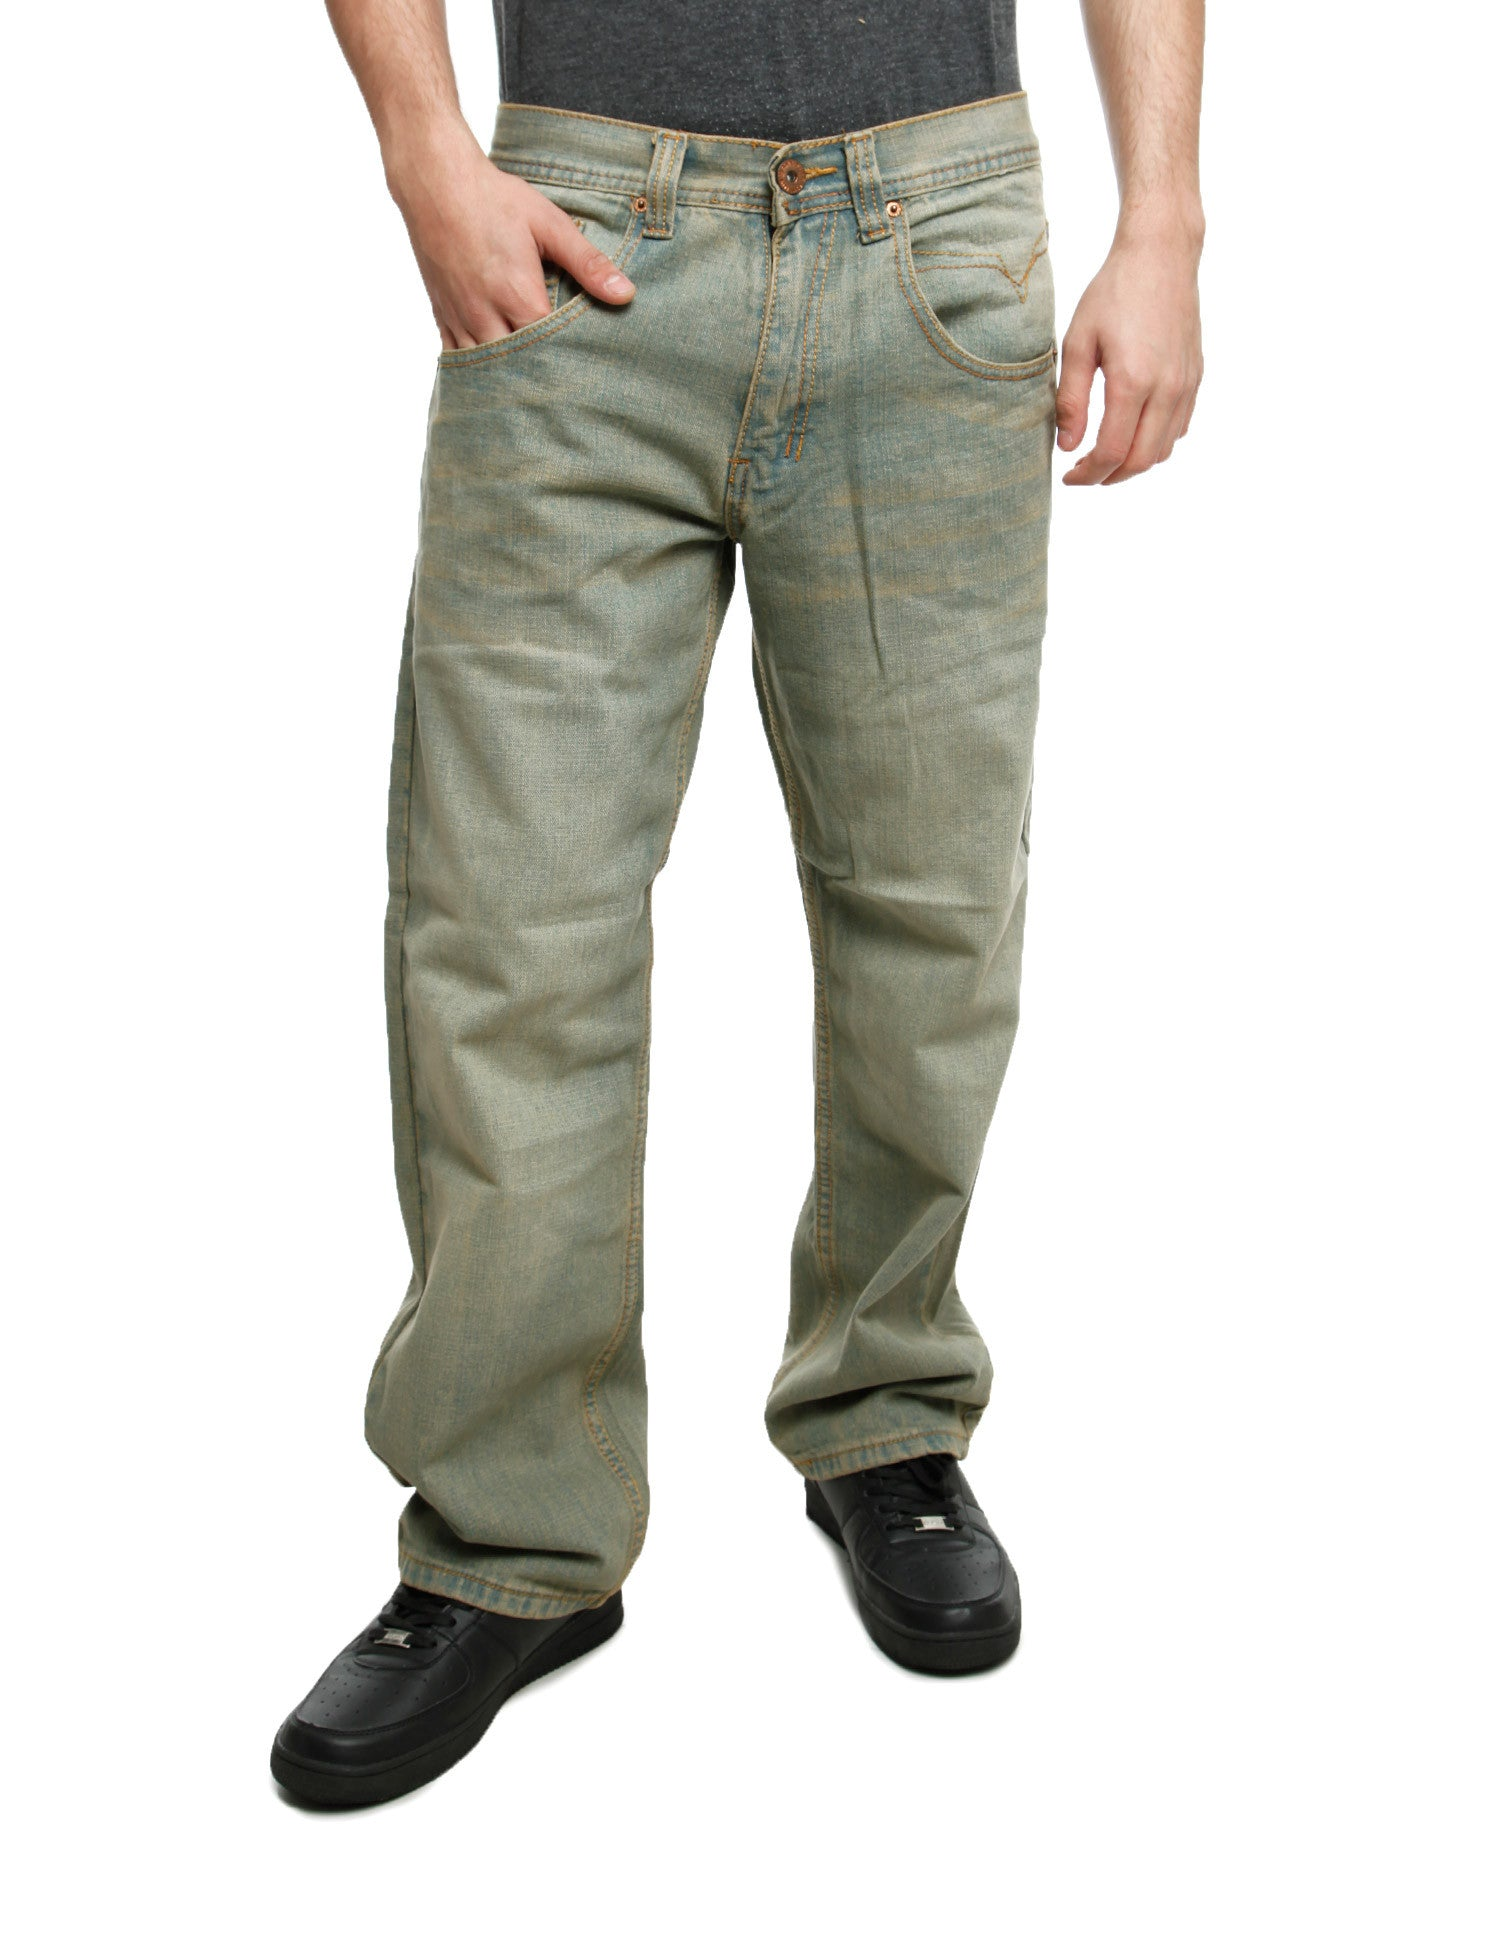 Royal Blue Jeans 8207 Desert Blue